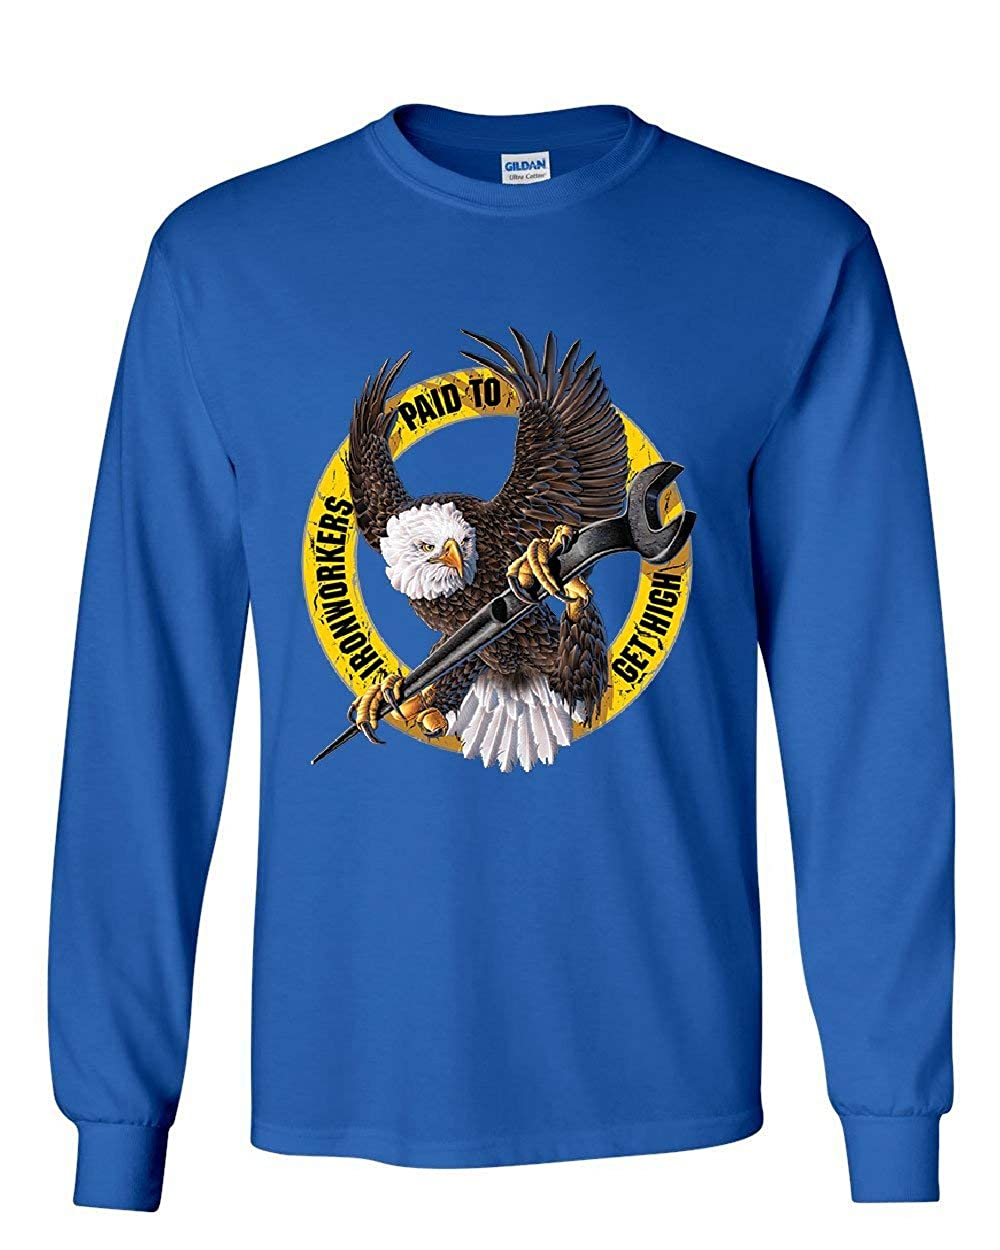 Ironworkers Paid to Get High Long Sleeve T-Shirt Construction Workers Union Tee